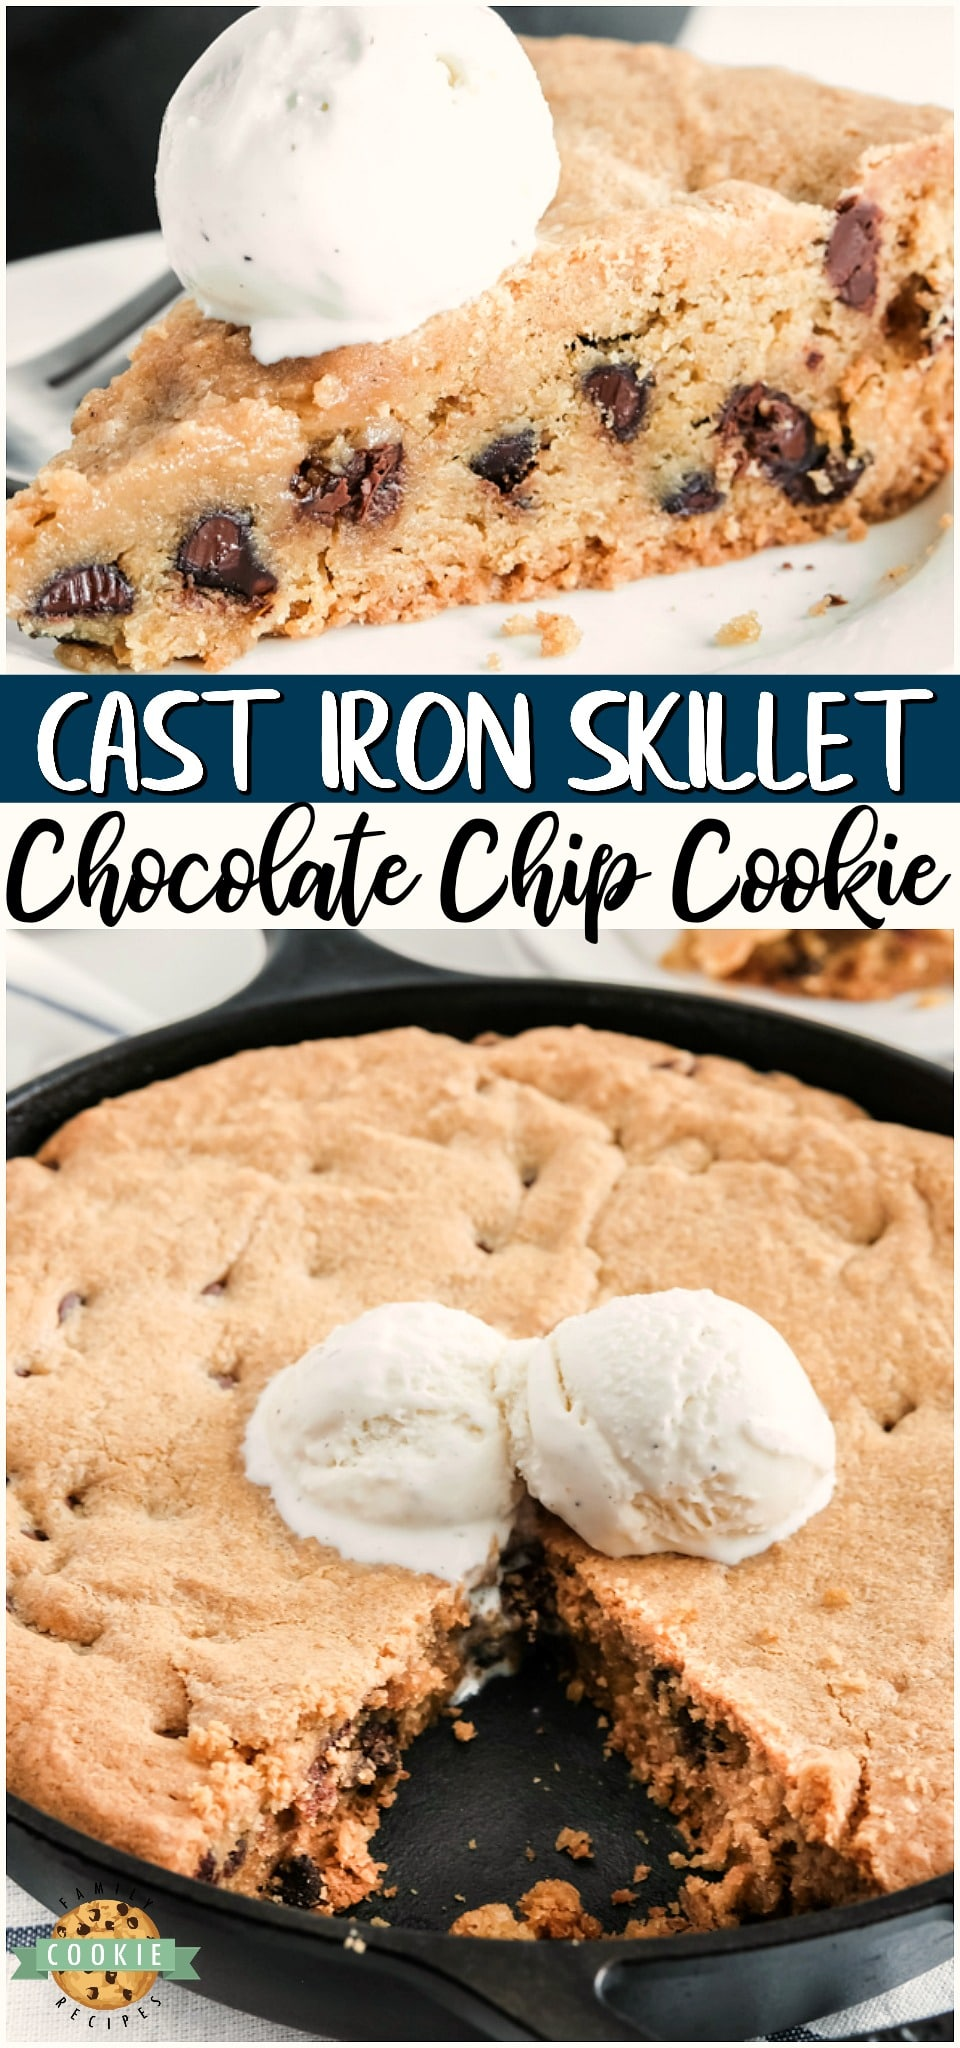 Cast Iron Skillet Cookie made with chocolate chip cookie dough, then baked in a skillet & topped with vanilla ice cream. Easy skillet cookie recipe for cookie lovers! #cookies #castiron #skillet #skilletcookie #chocolatechip #dessert from FAMILY COOKIE RECIPES via @familycookierecipes